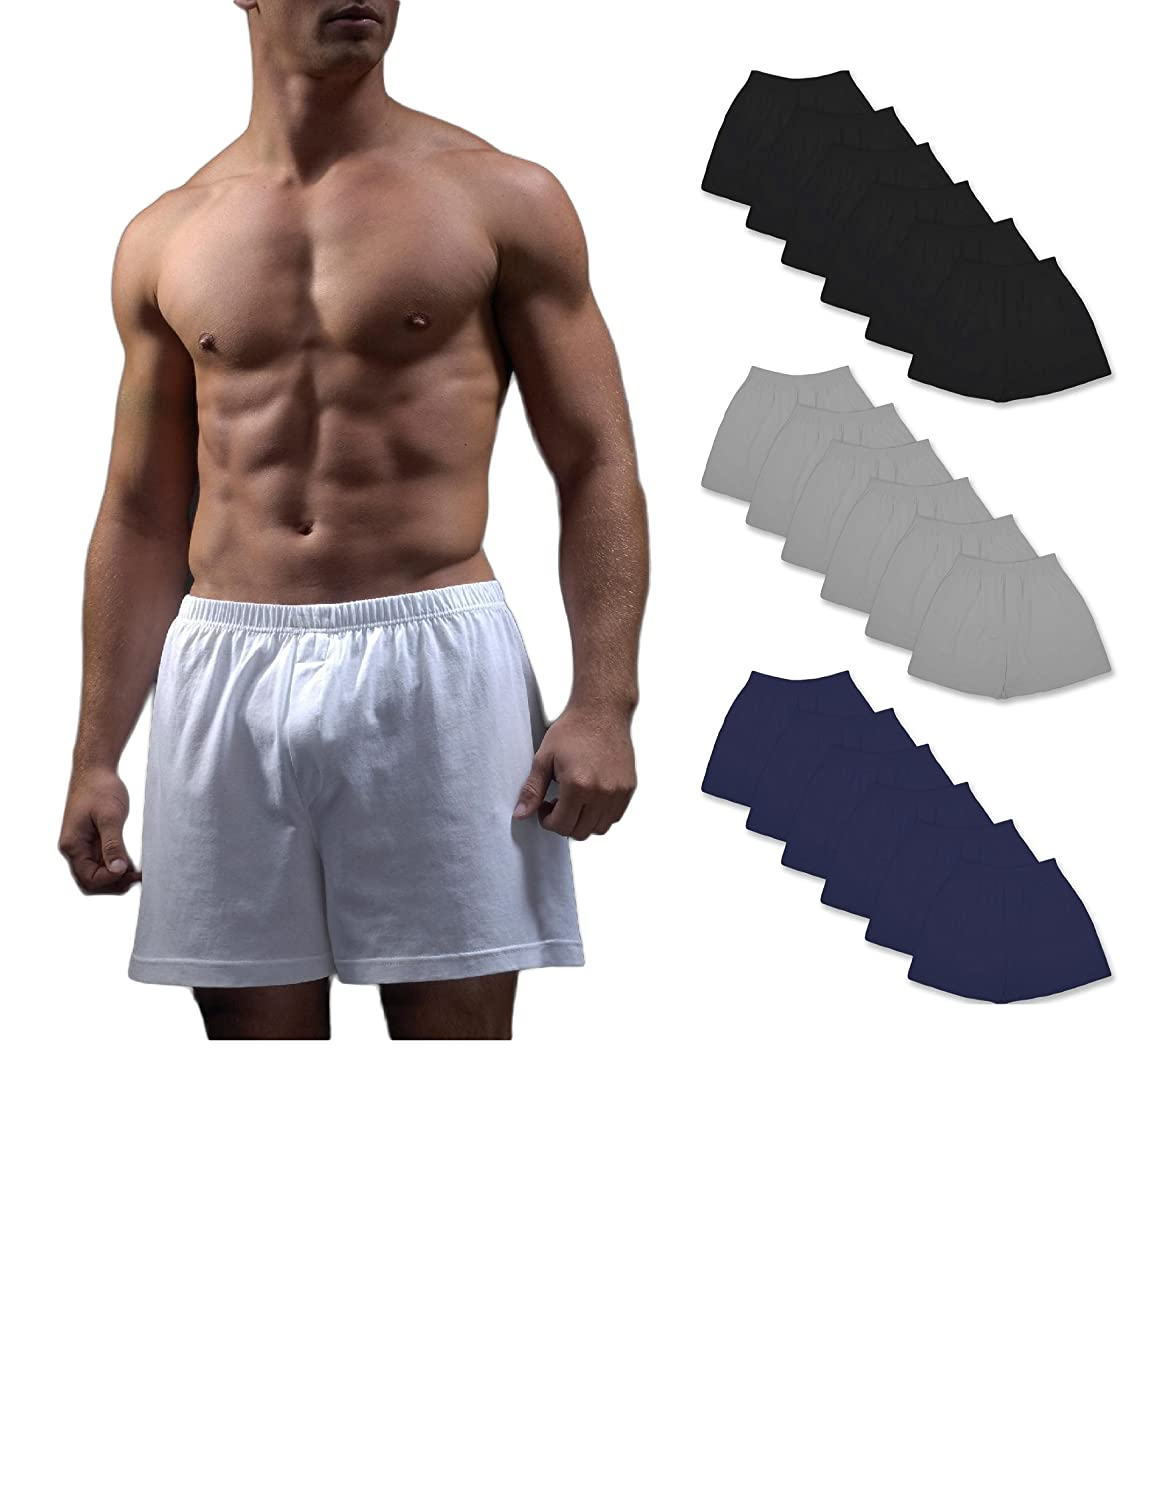 HILITE CLASSIC Classic Men's 12 Pack Classics Full Cut Cotton Boxer Shorts 313HL